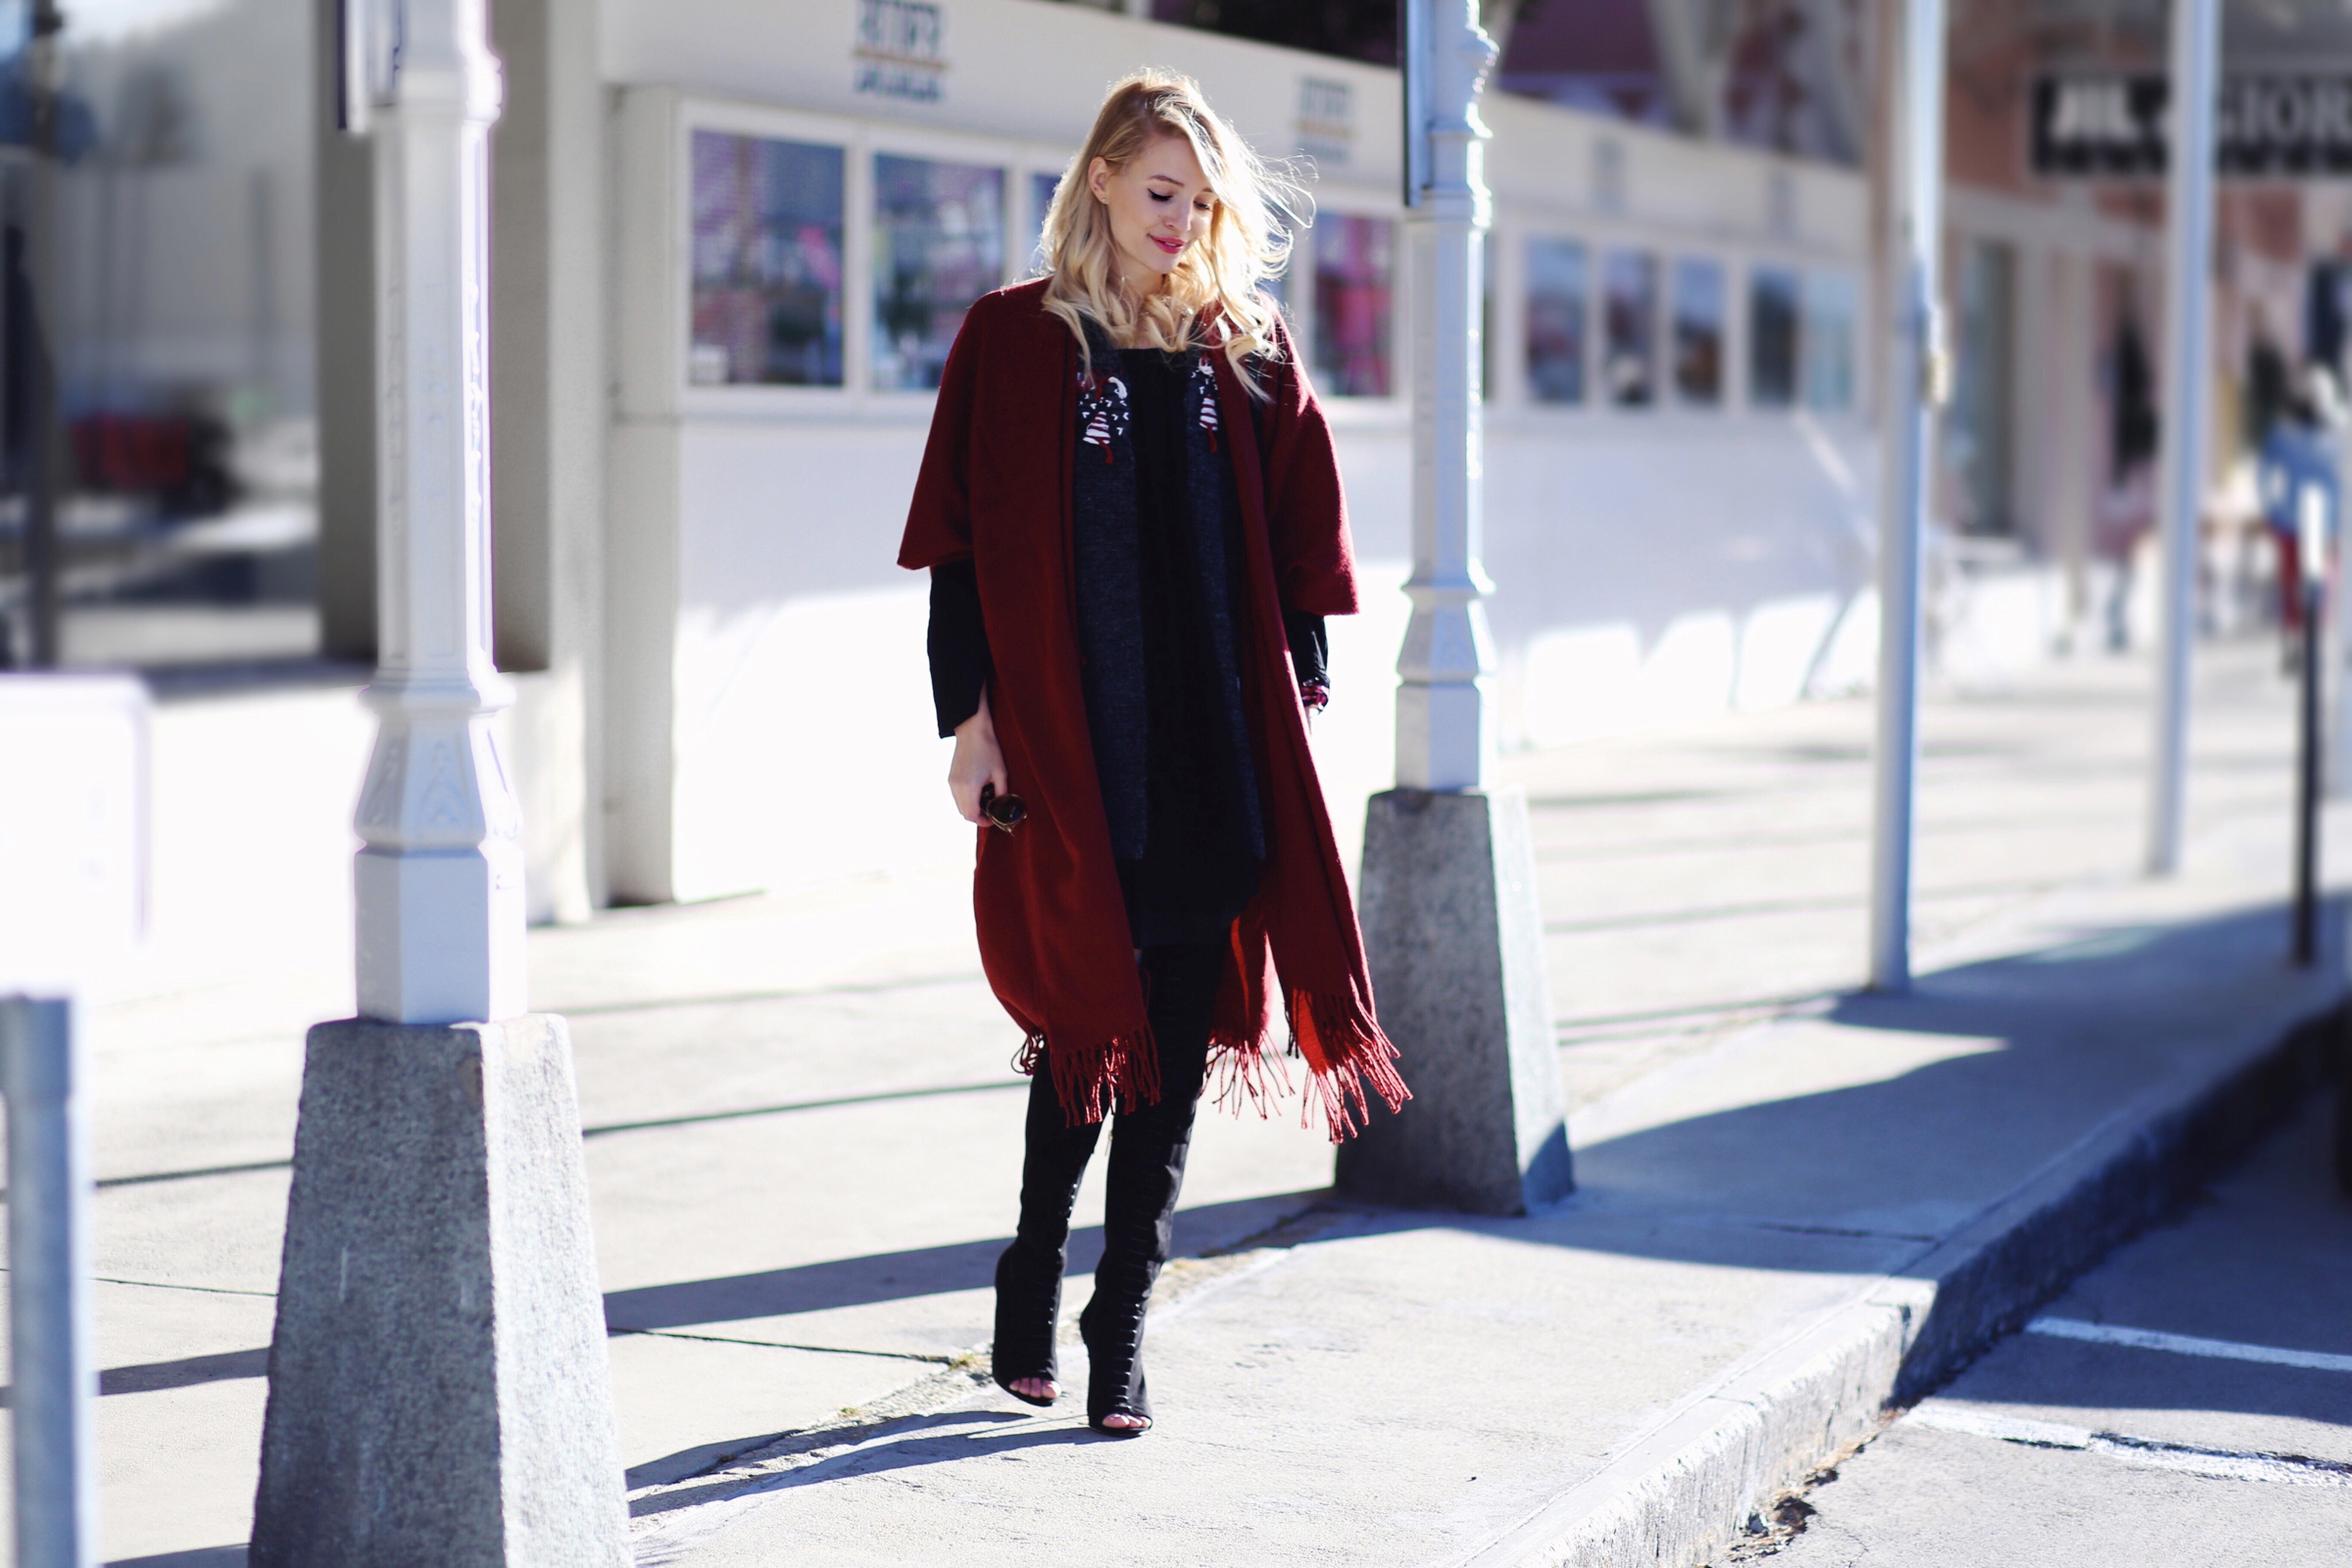 Red cape & Lace-up boots | St. Moritz